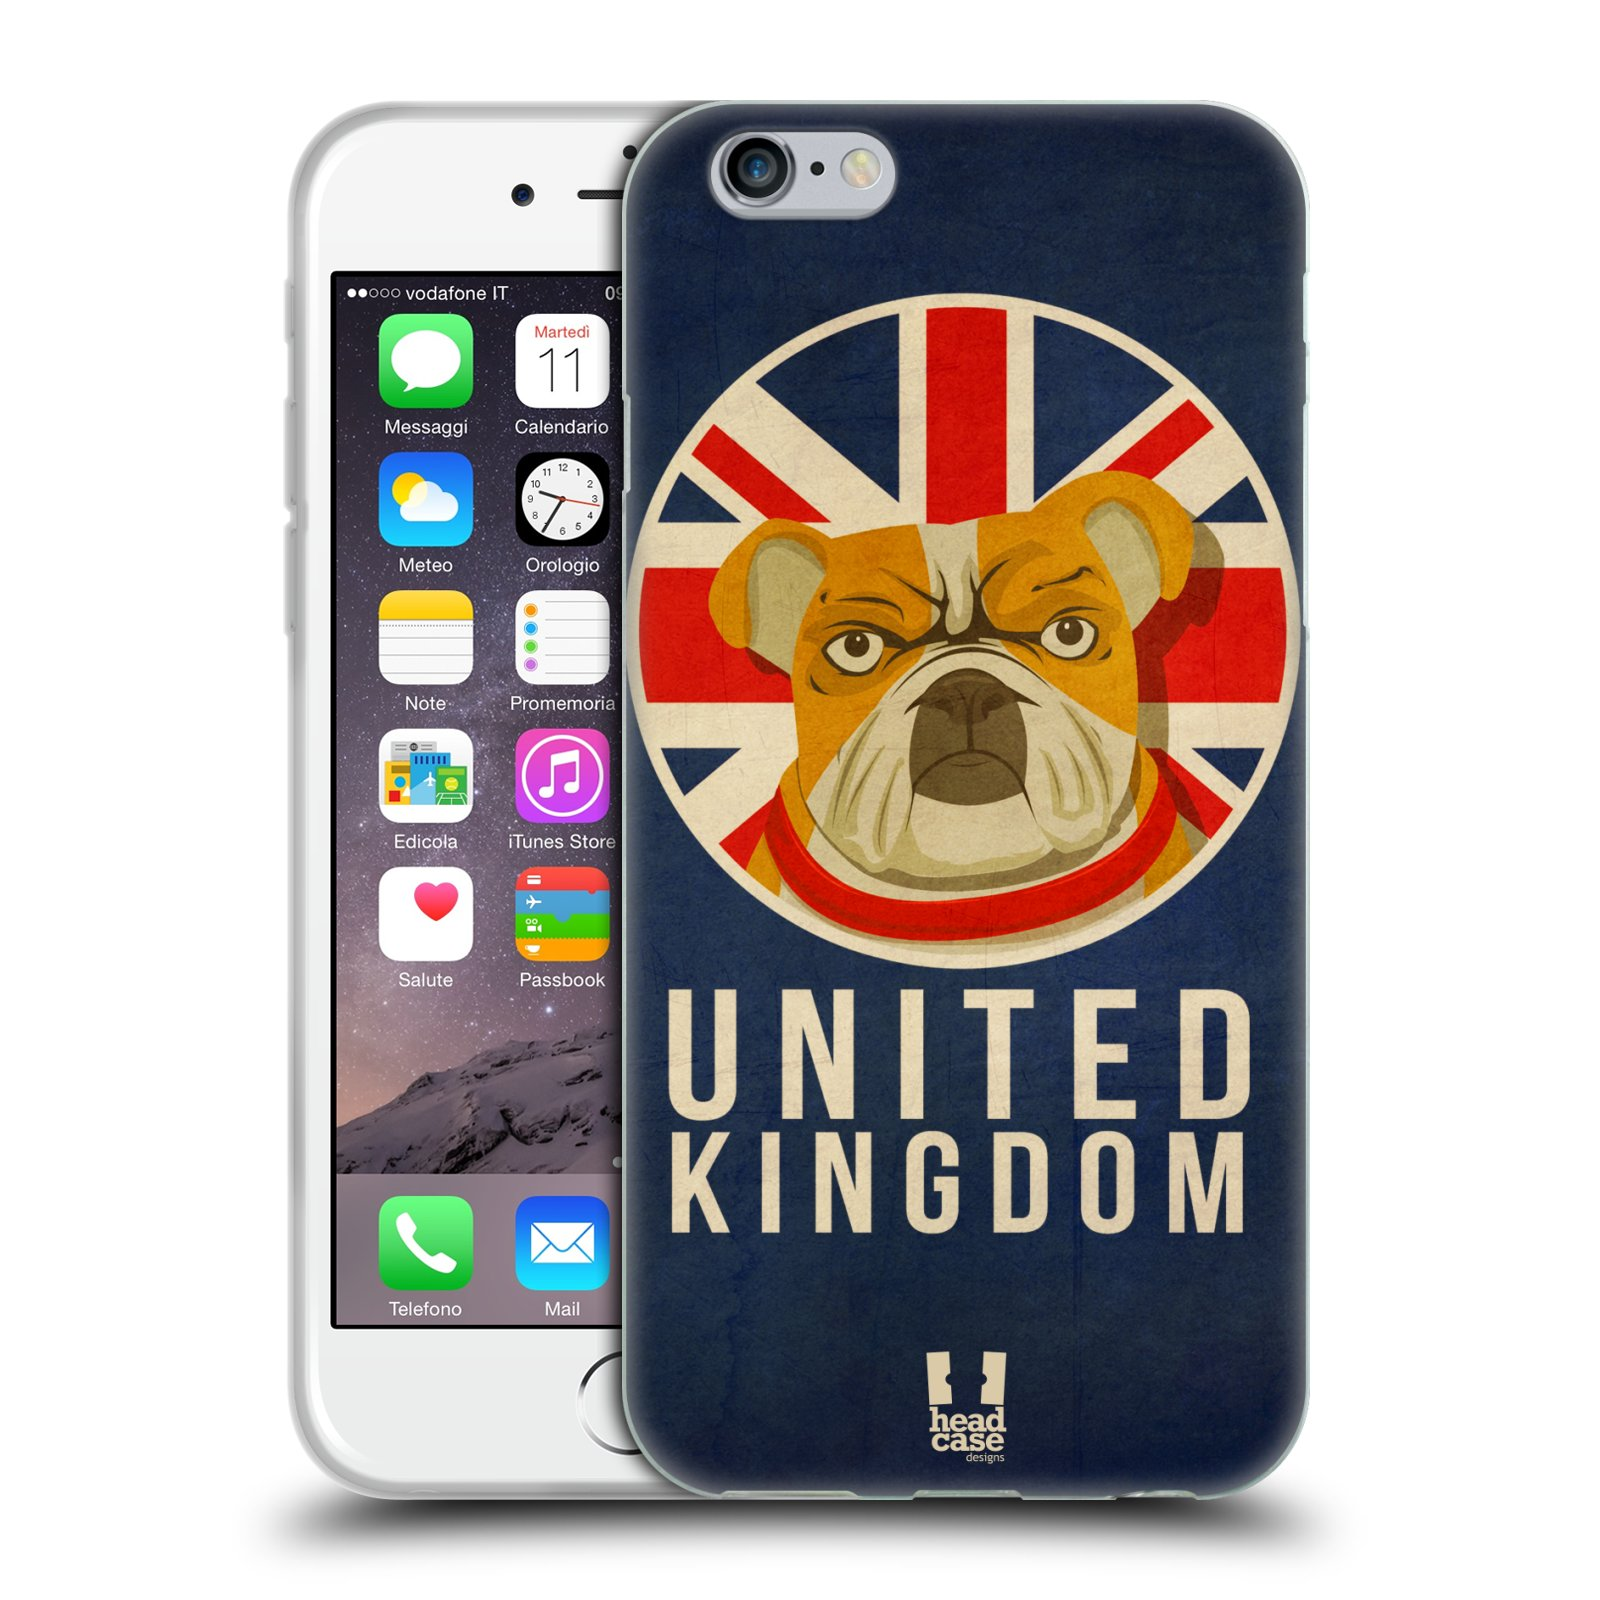 HEAD CASE silikonový obal na mobil Apple Iphone 6/6S vzor Patriotismus zvíře symbol Buldok UK